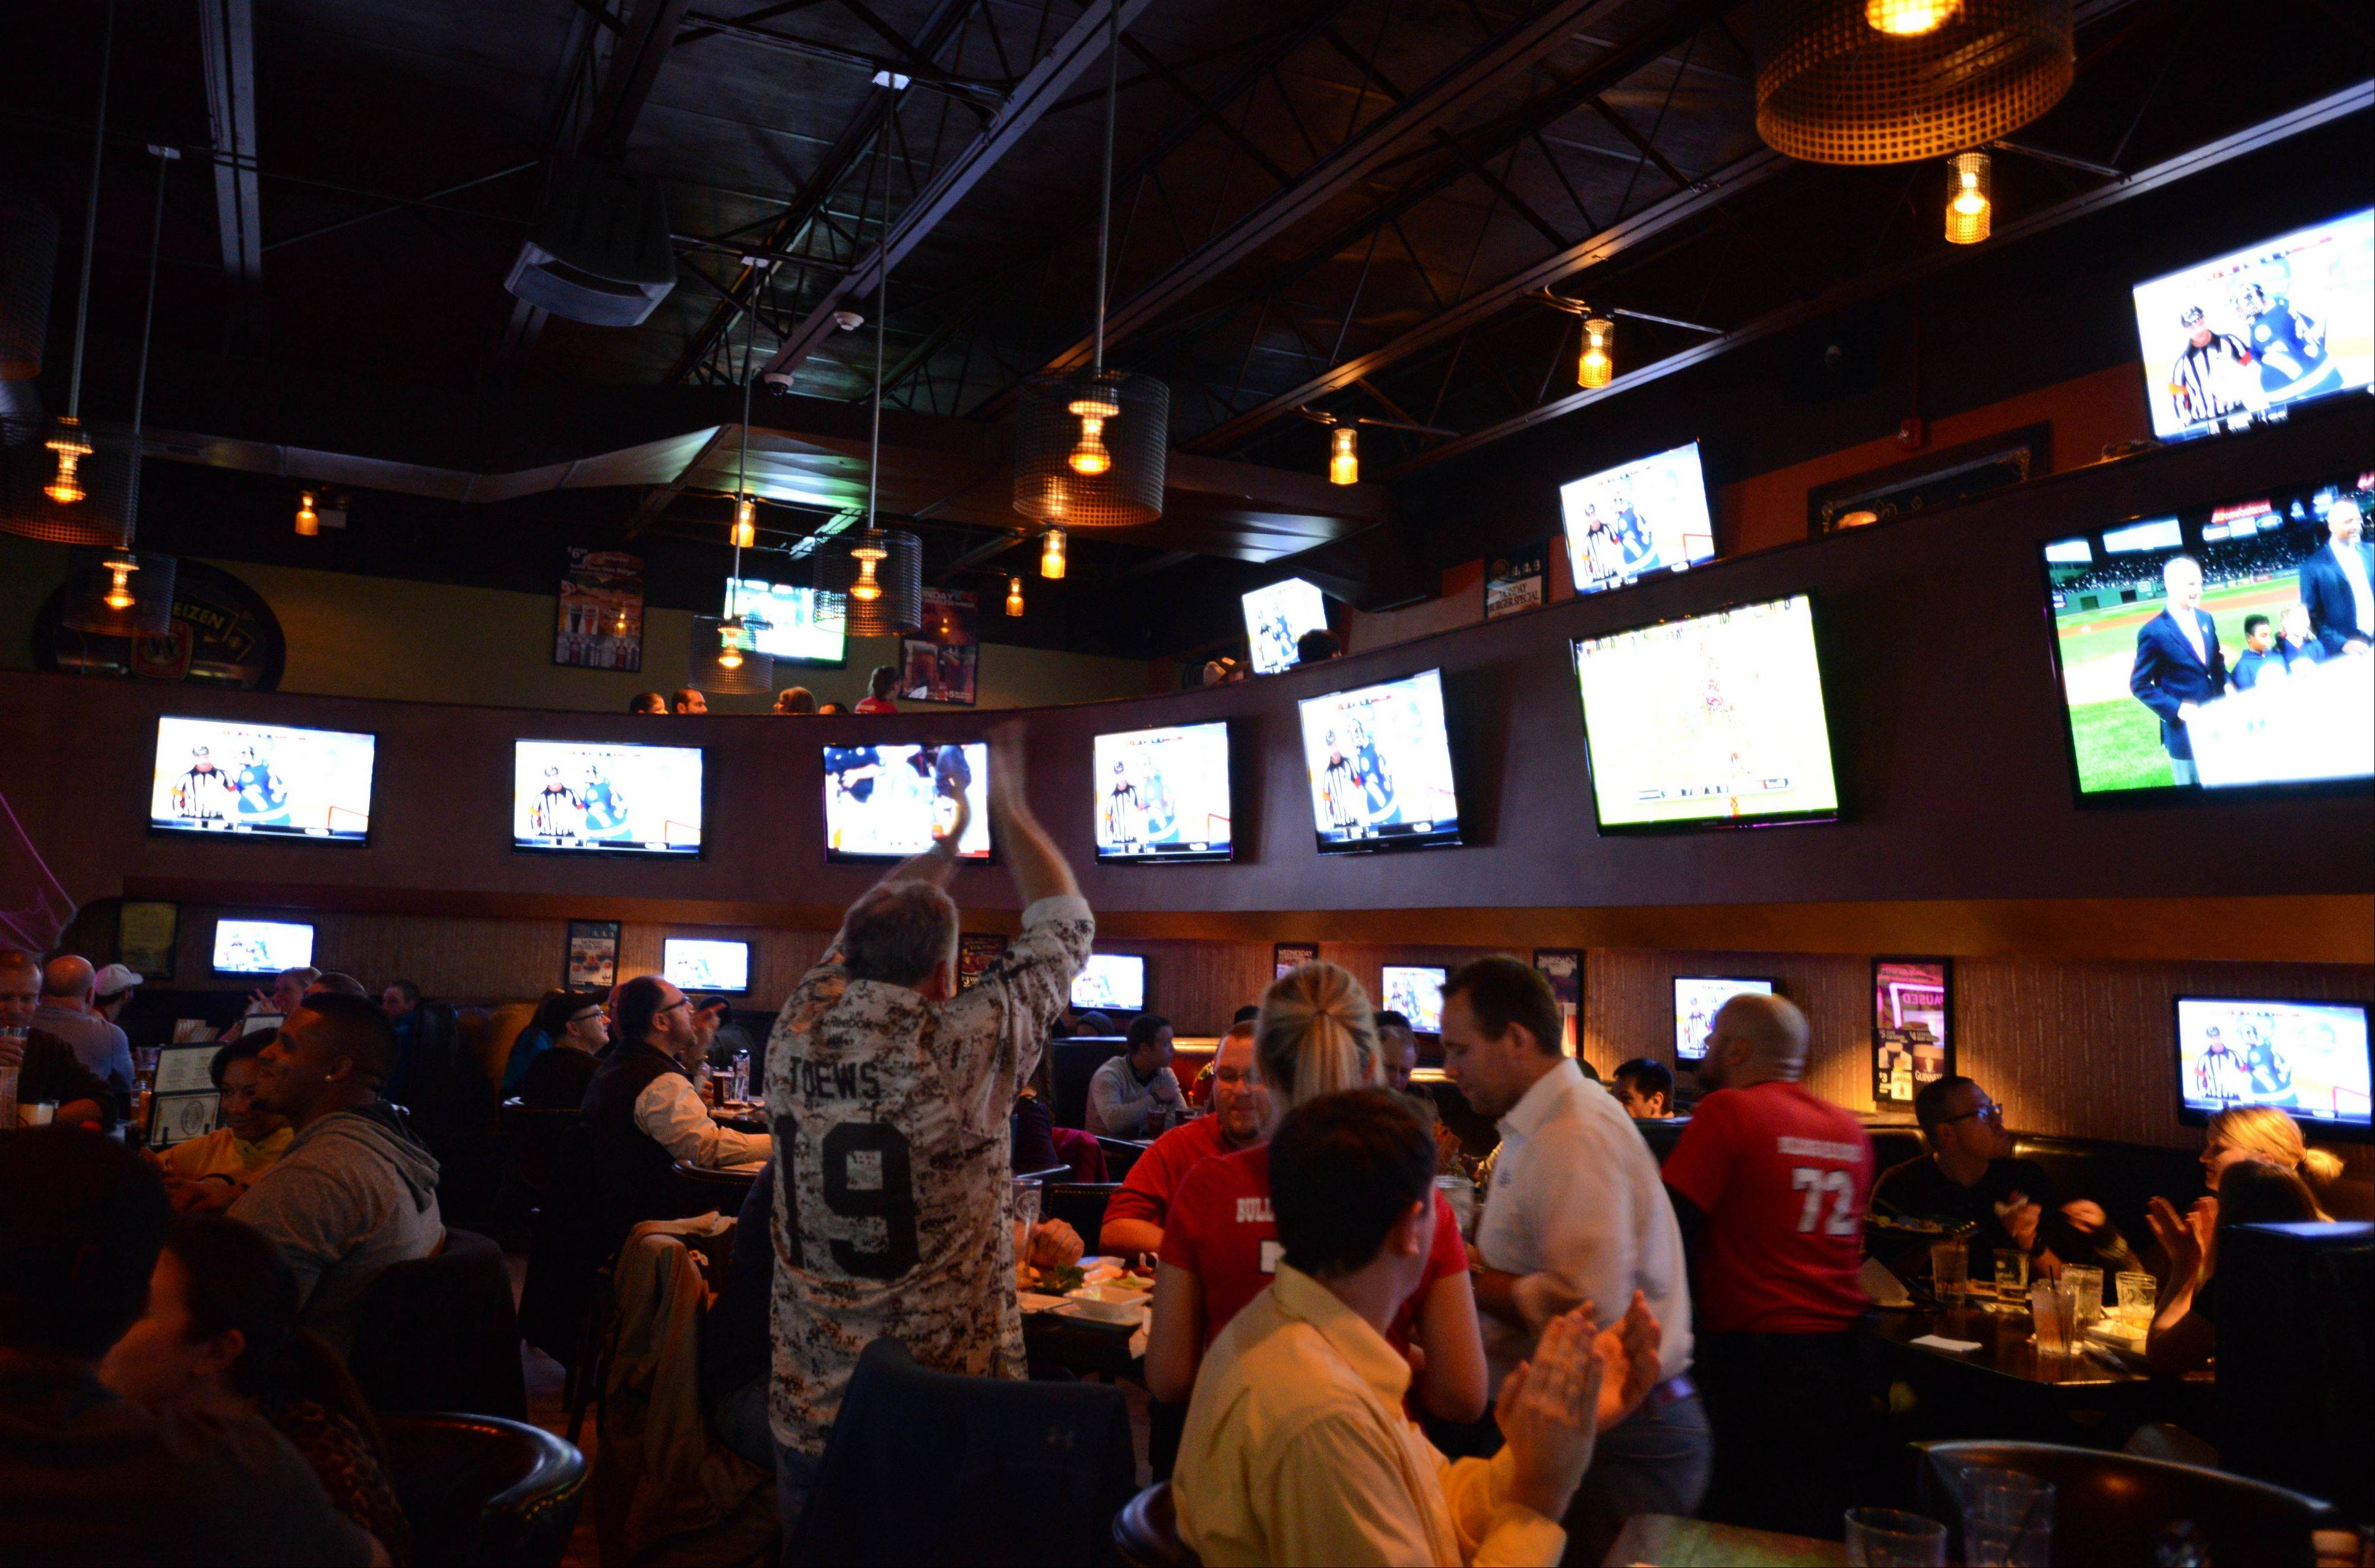 Bulldog Ale House in Roselle has lots of TVs tuned to sports.